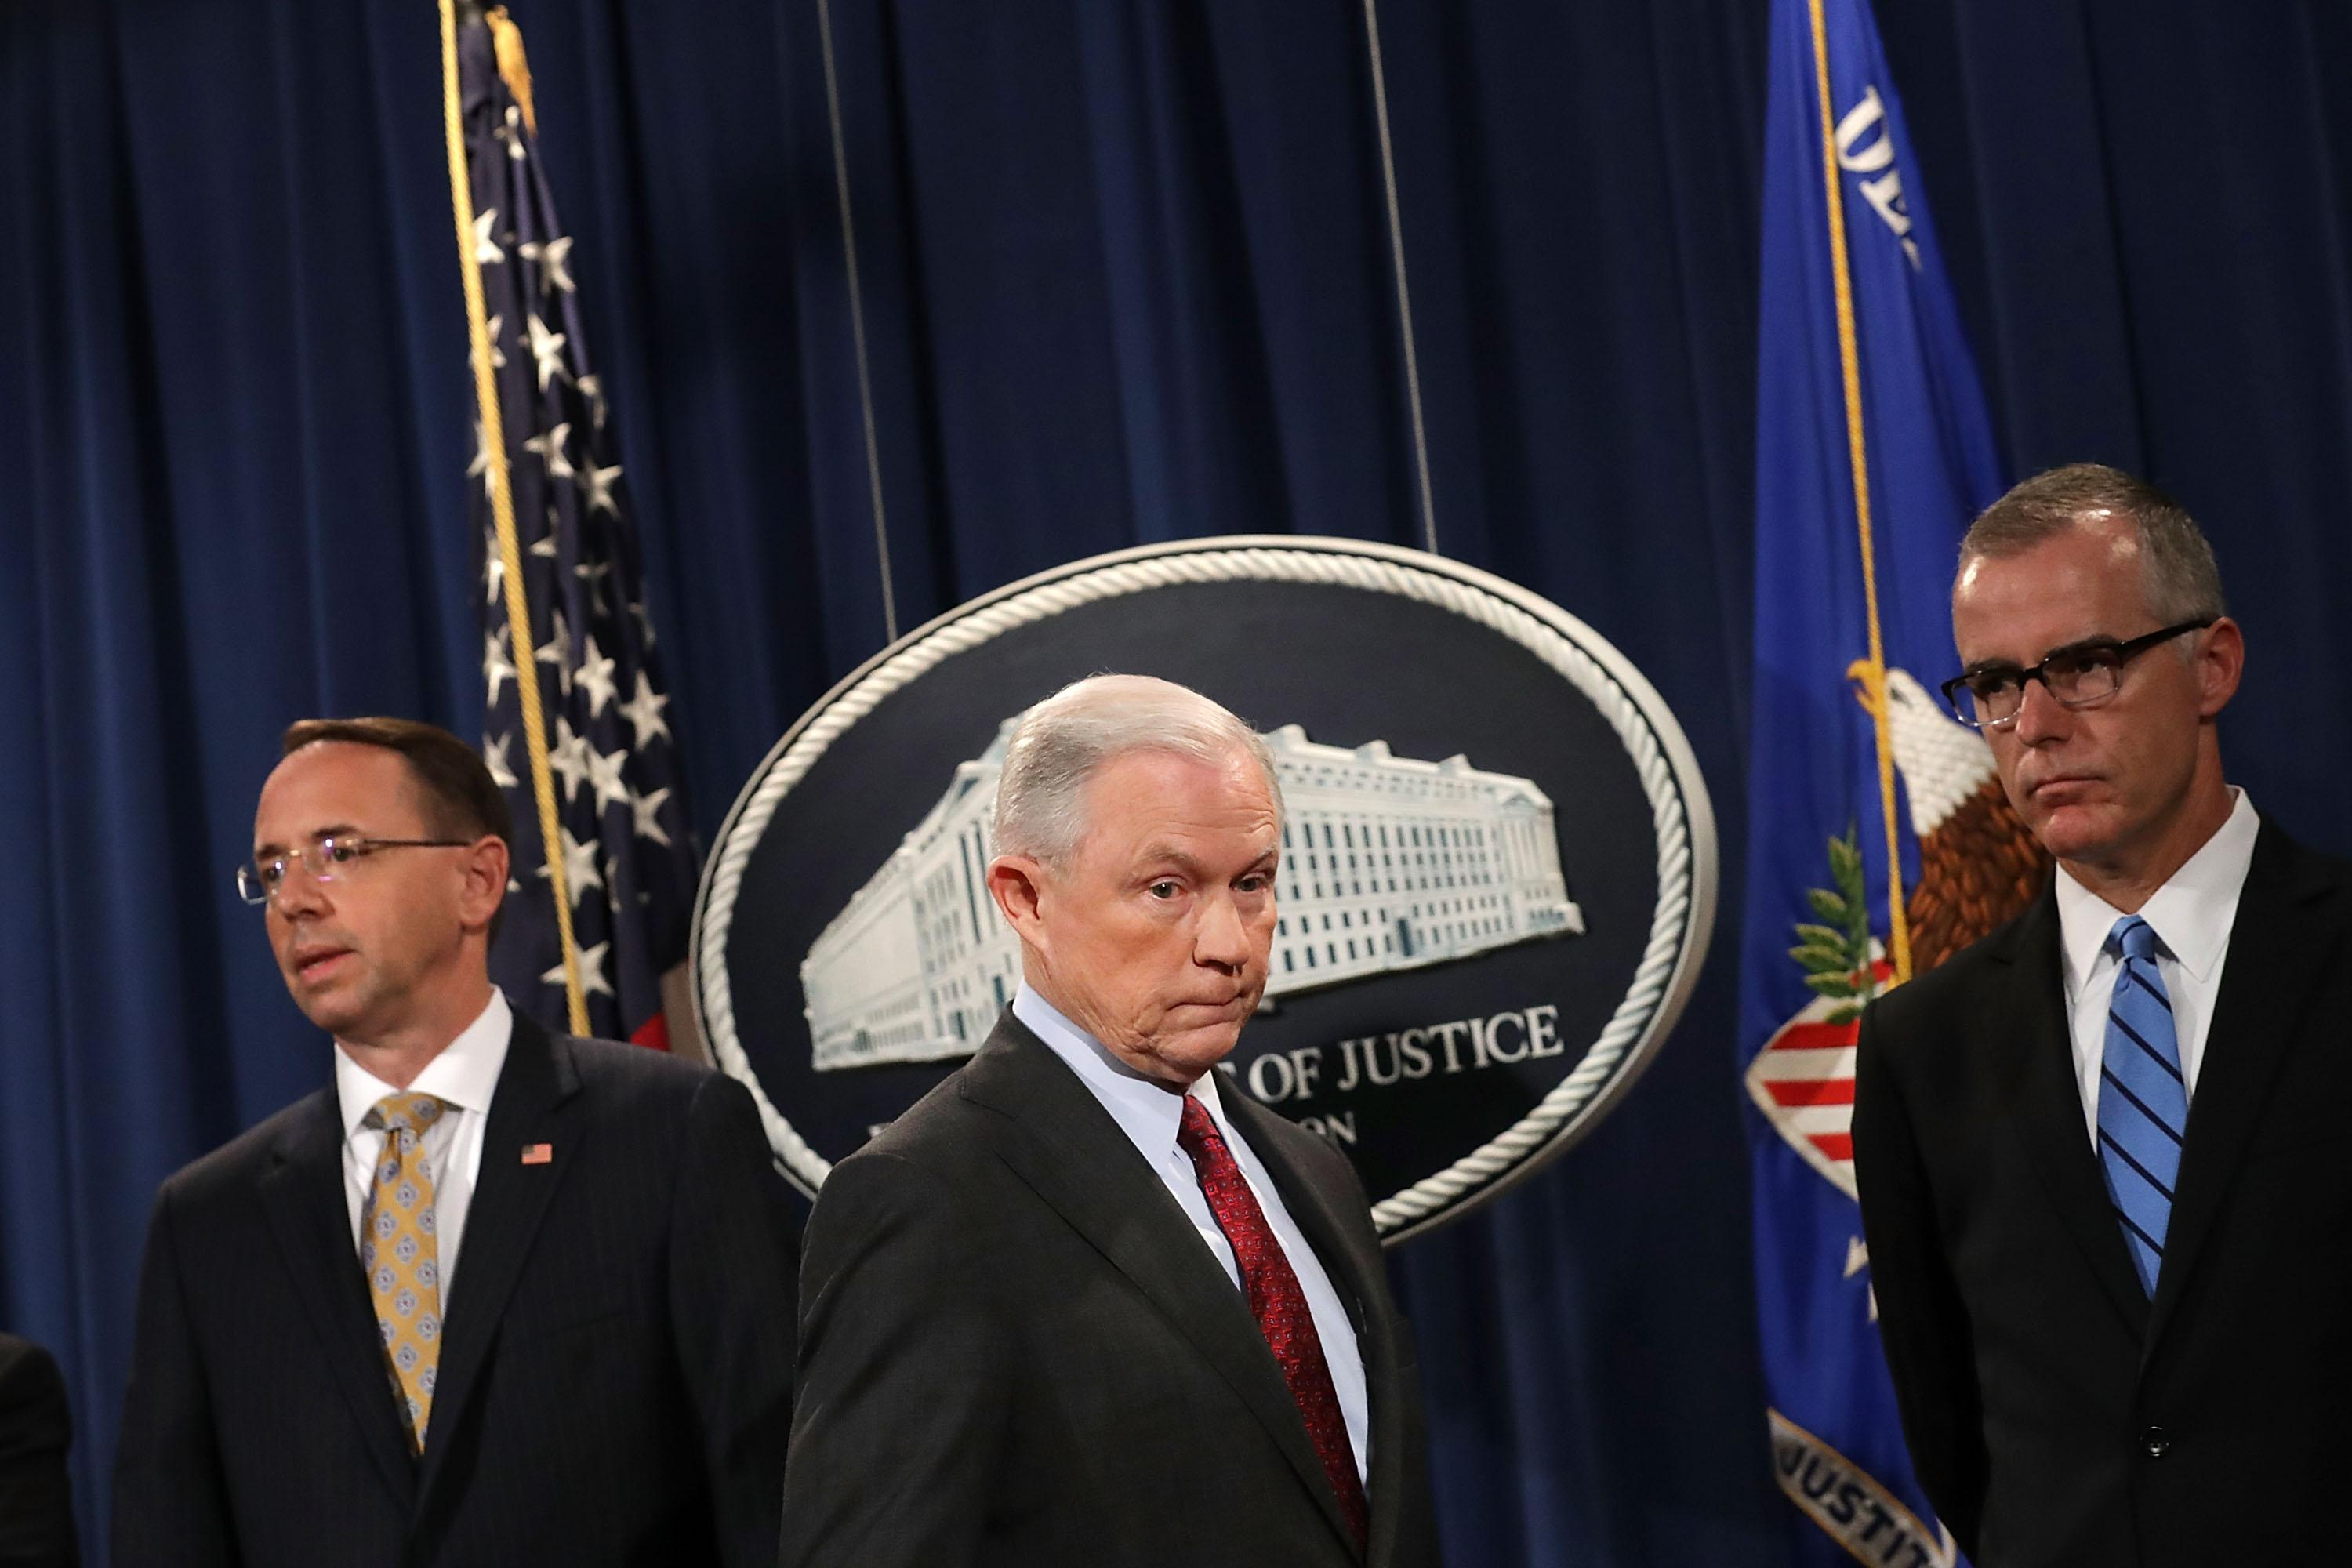 WASHINGTON, DC - JULY 20:  (L-R) Deputy Attorney General Rod Rosenstein, U.S. Attorney General Jeff Sessions, Acting FBI Director Andrew McCabe other law enforcement officials hold a news conference to announce an 'international cybercrime enforcement action' at the Department of Justice July 20, 2017 in Washington, DC. President Donald Trump said Wednesday in an interview with the New York Times that he never would have appointed Sessions had he known Sessions would recuse himself from overseeing the investigation into Russian interference in the 2016 presidential election. 'Sessions should have never recused himself, and if he was going to recuse himself, he should have told me before he took the job and I would have picked somebody else,' Trump said.  (Photo by Chip Somodevilla/Getty Images)